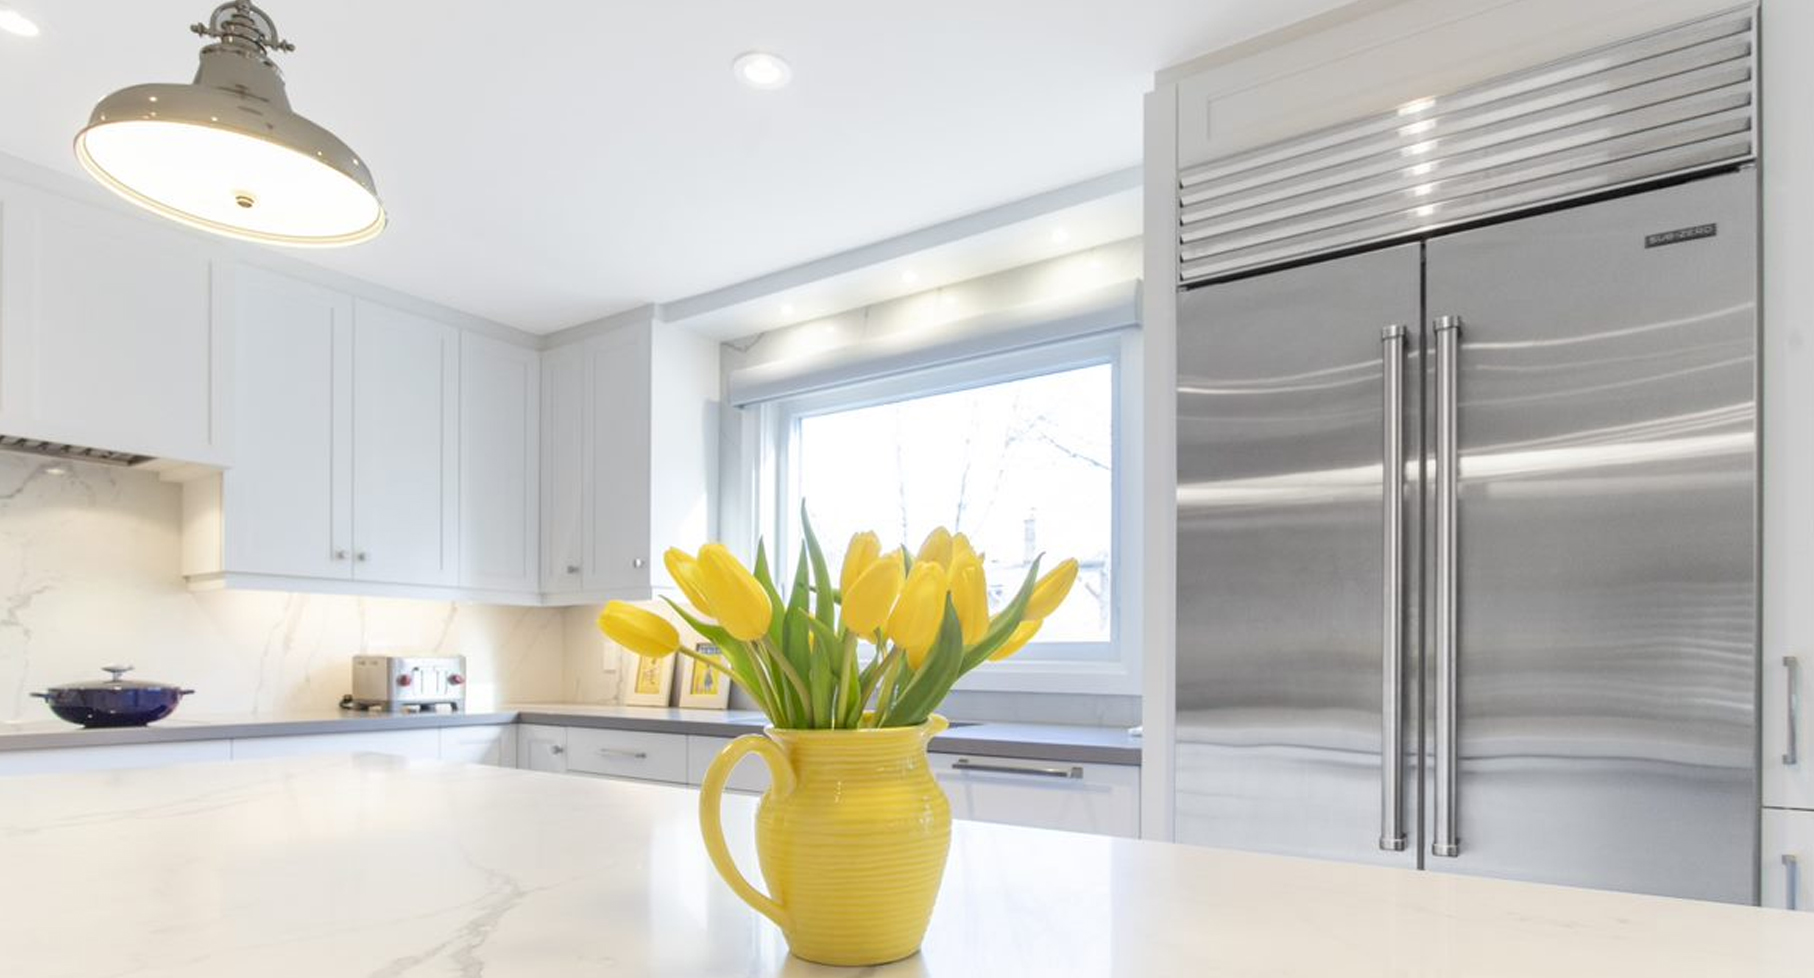 Sub-zero fridge behind a yellow vase with yellow tulips